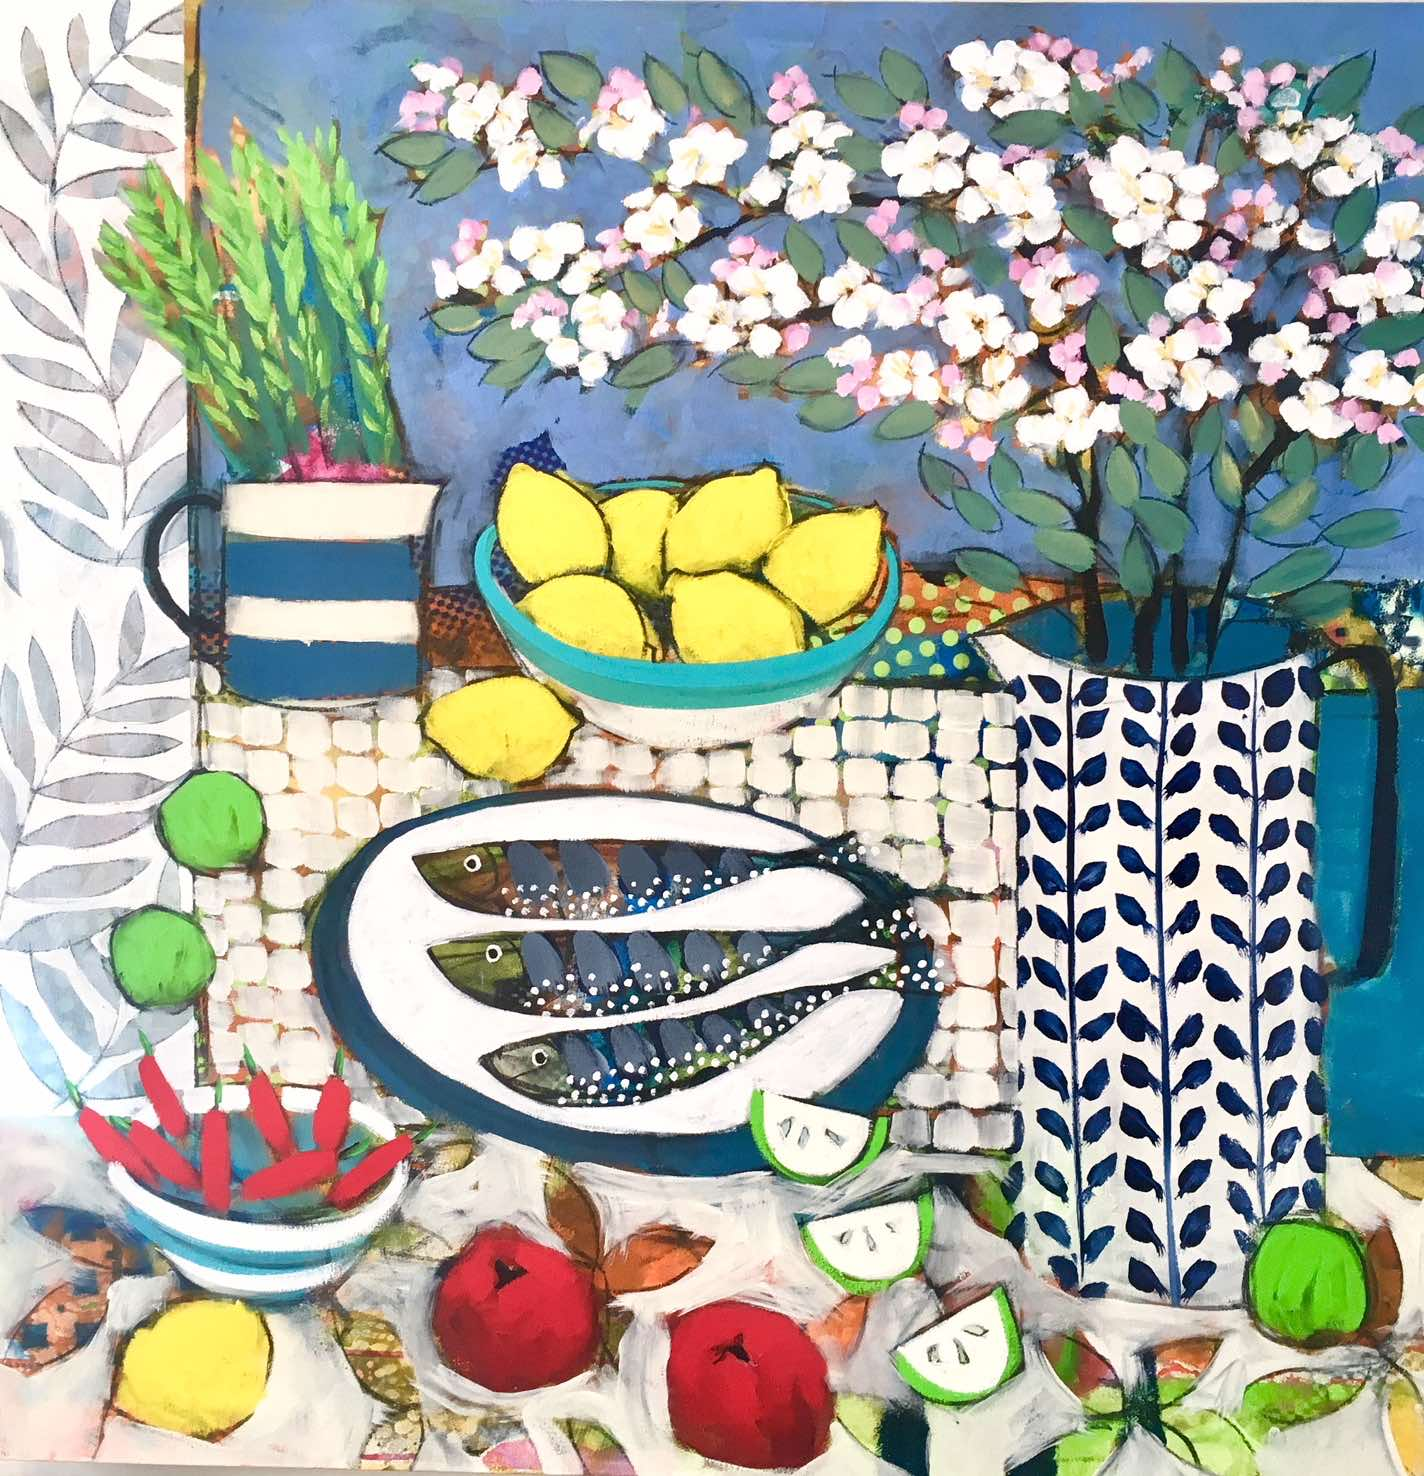 <span class=&#34;link fancybox-details-link&#34;><a href=&#34;/artists/59-relton-marine/works/2313-relton-marine-still-life-with-appleblossom-and-fish/&#34;>View Detail Page</a></span><div class=&#34;artist&#34;><strong>Relton Marine</strong></div> <div class=&#34;title&#34;><em>Still Life with Appleblossom and Fish</em></div> <div class=&#34;medium&#34;>Acrylic on Canvas</div> <div class=&#34;dimensions&#34;>91 x 91 cm </div><div class=&#34;copyright_line&#34;>Copyright The Artist</div>